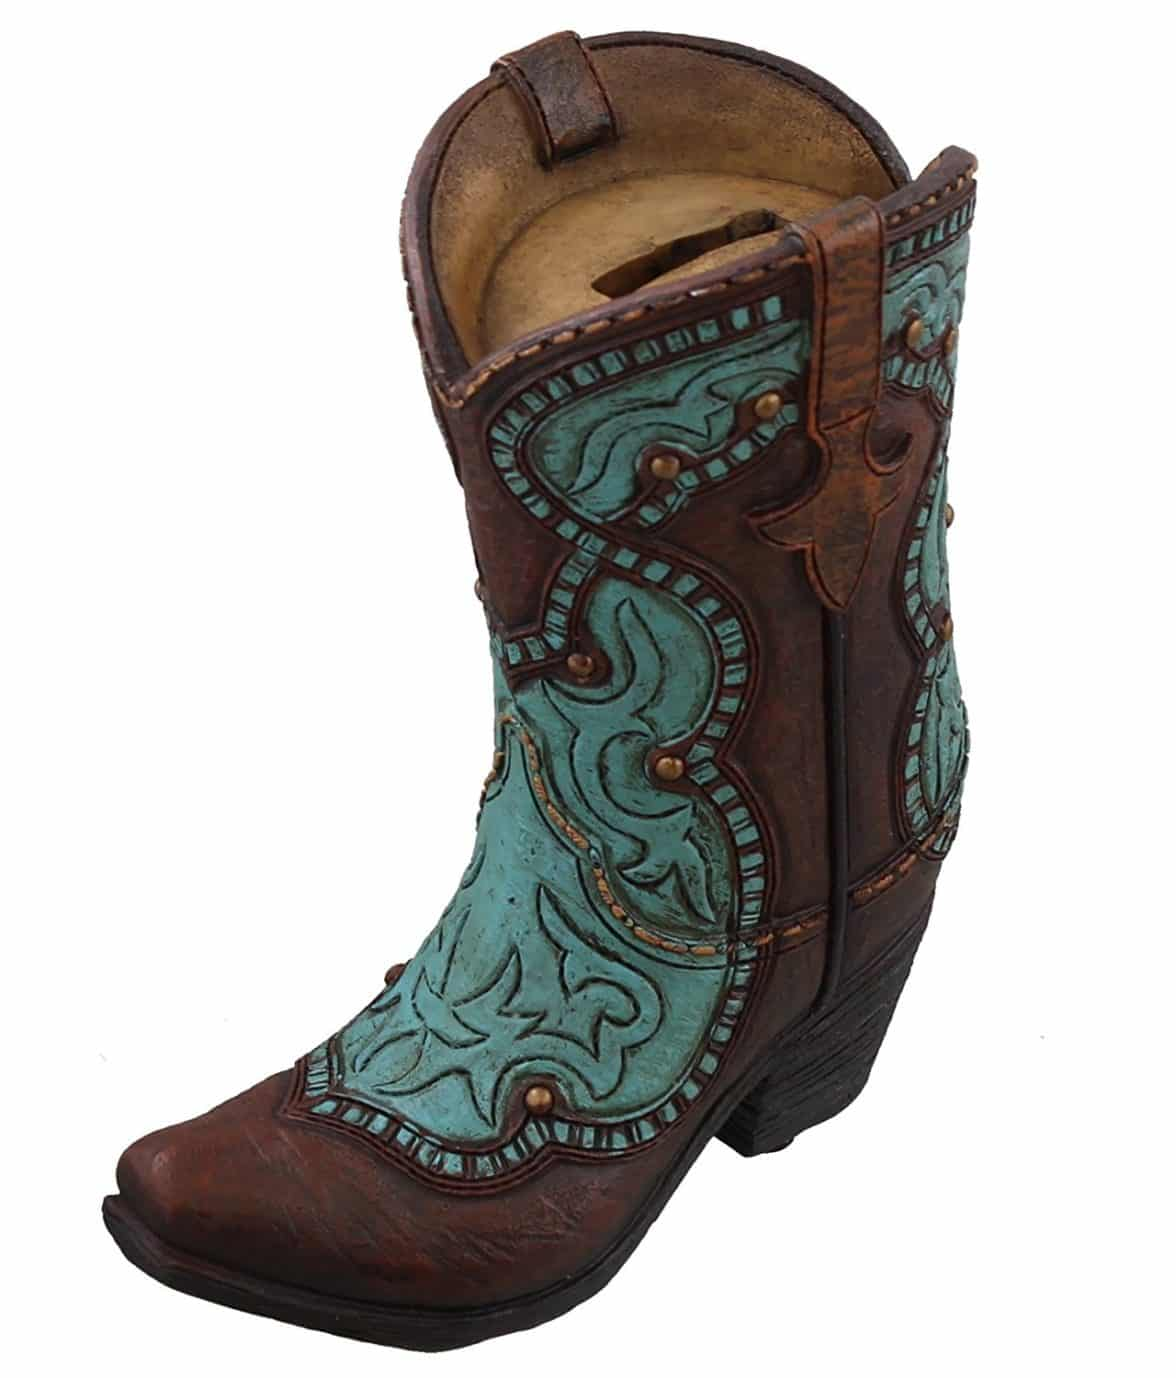 Western Cowboy Boot Piggy Bank - Turquoise Accents